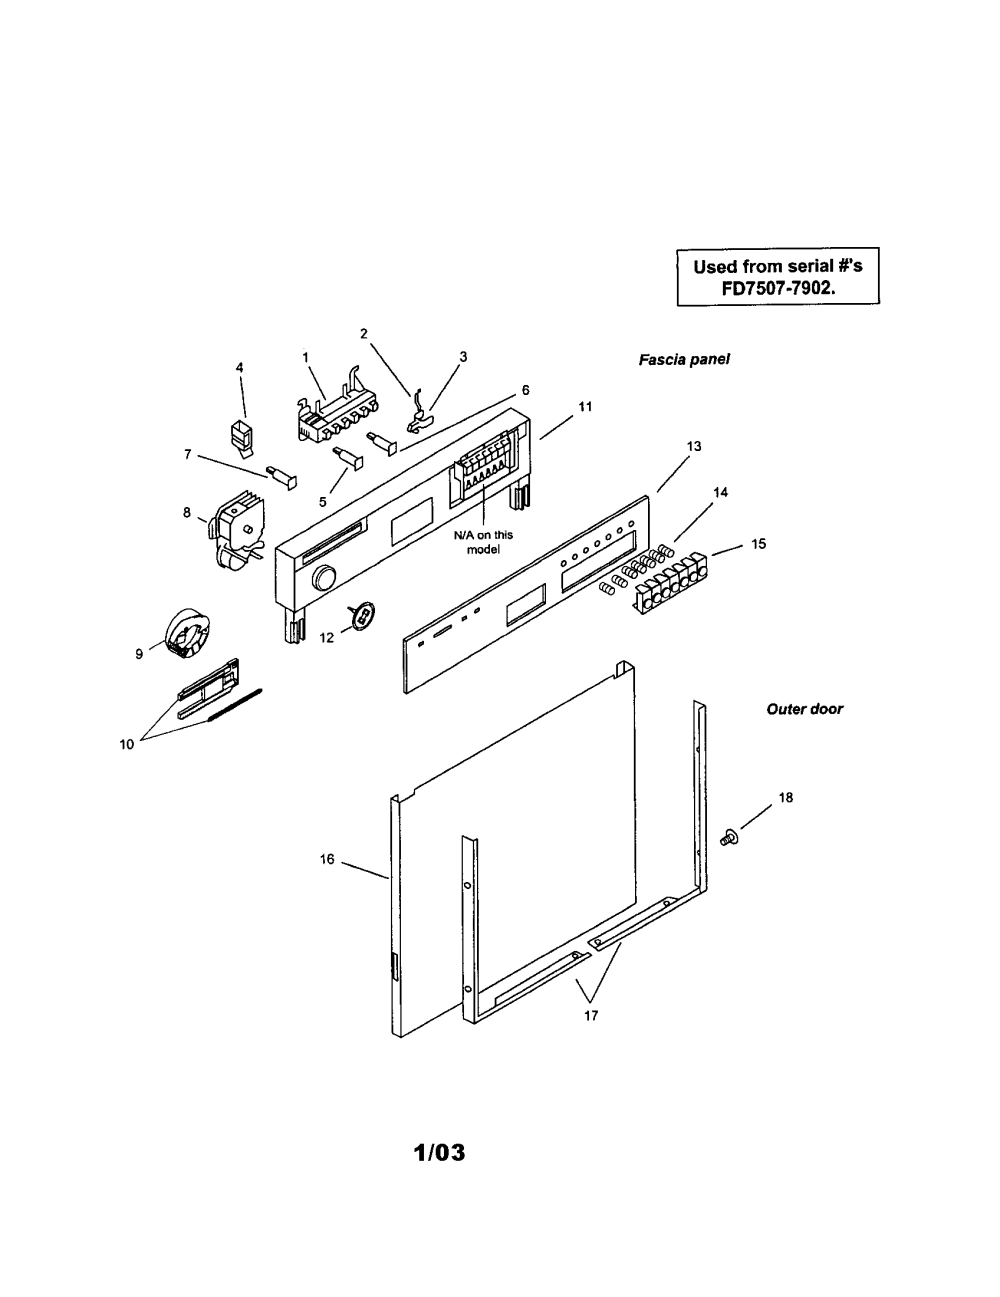 medium resolution of smu7052uc14 dishwasher fascia panel and outer door parts diagram